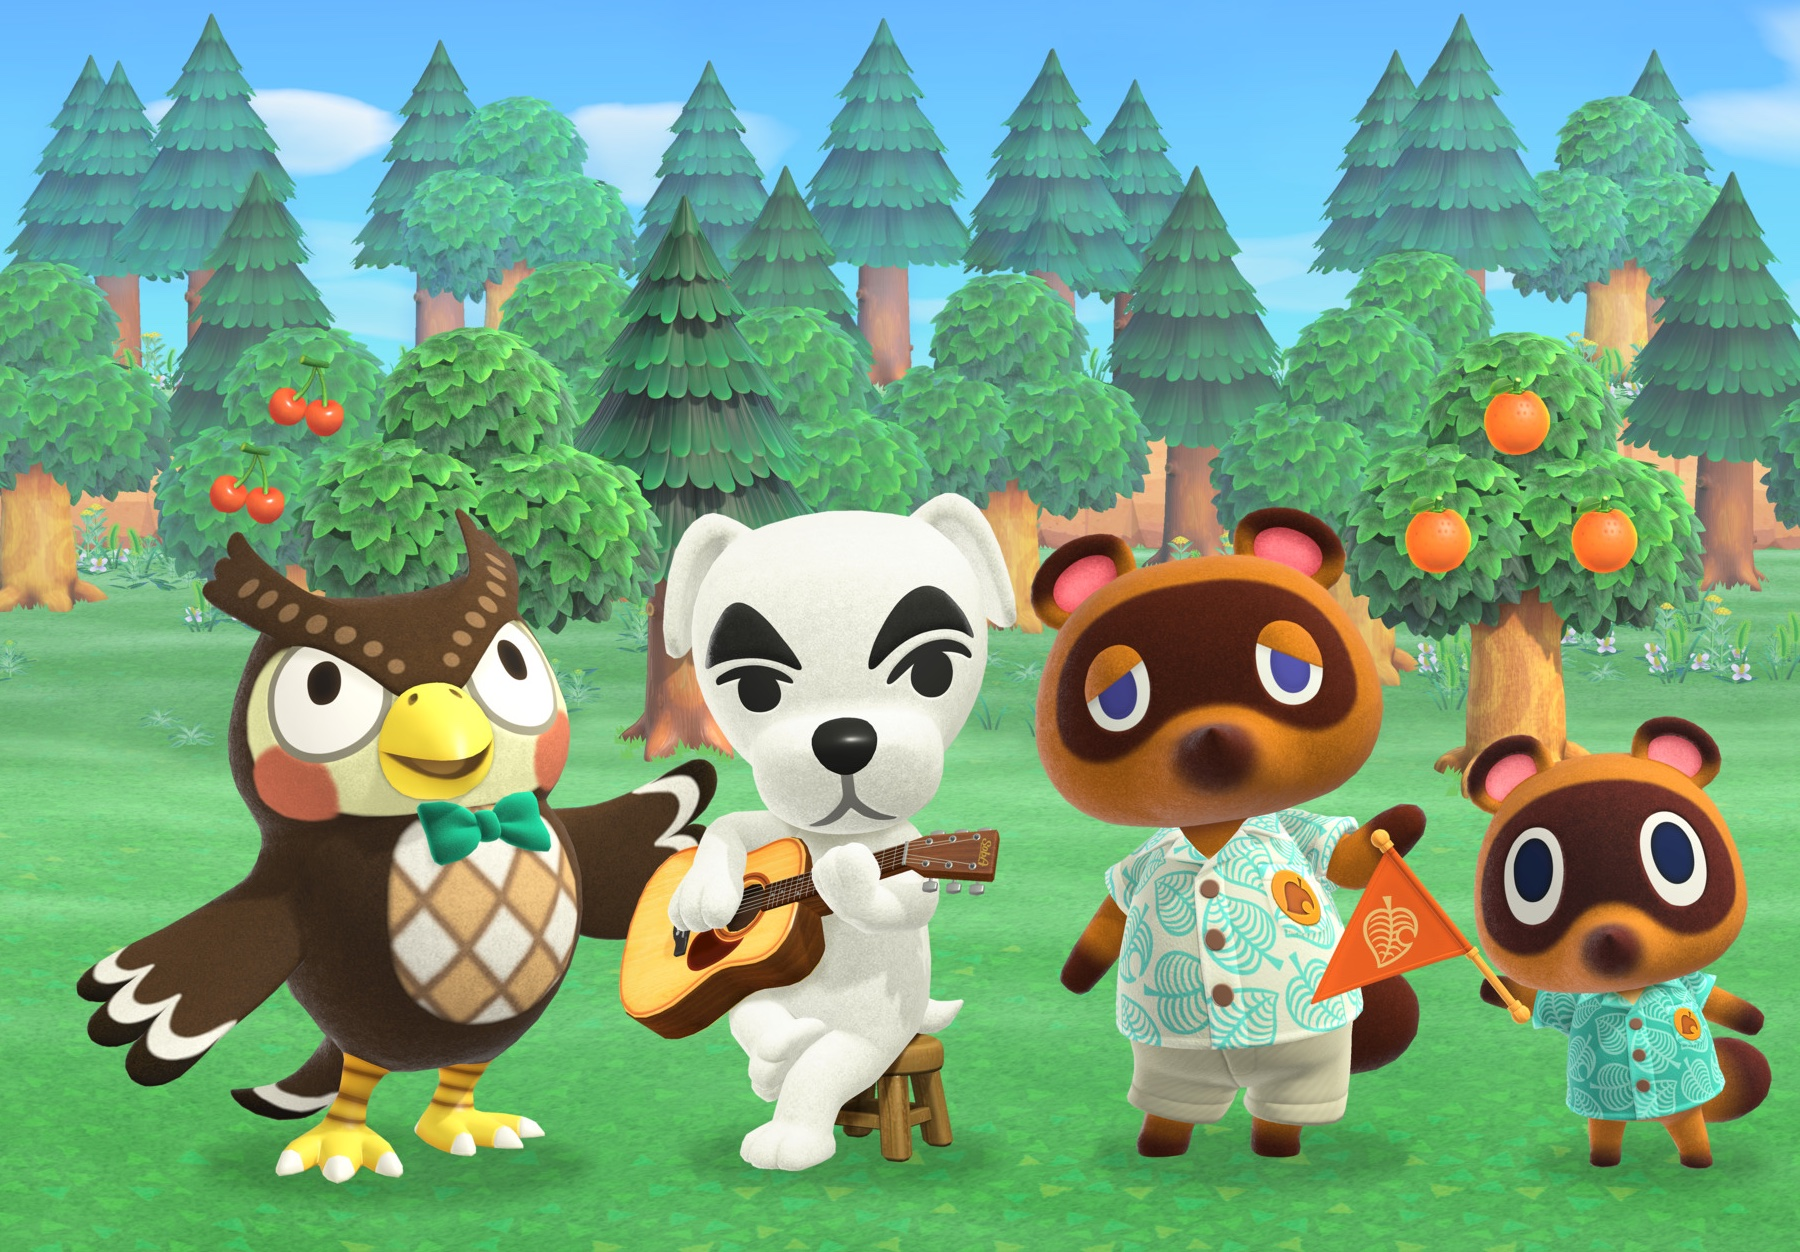 K.K. Slider among characters from 'Animal Crossing: New Horizons'